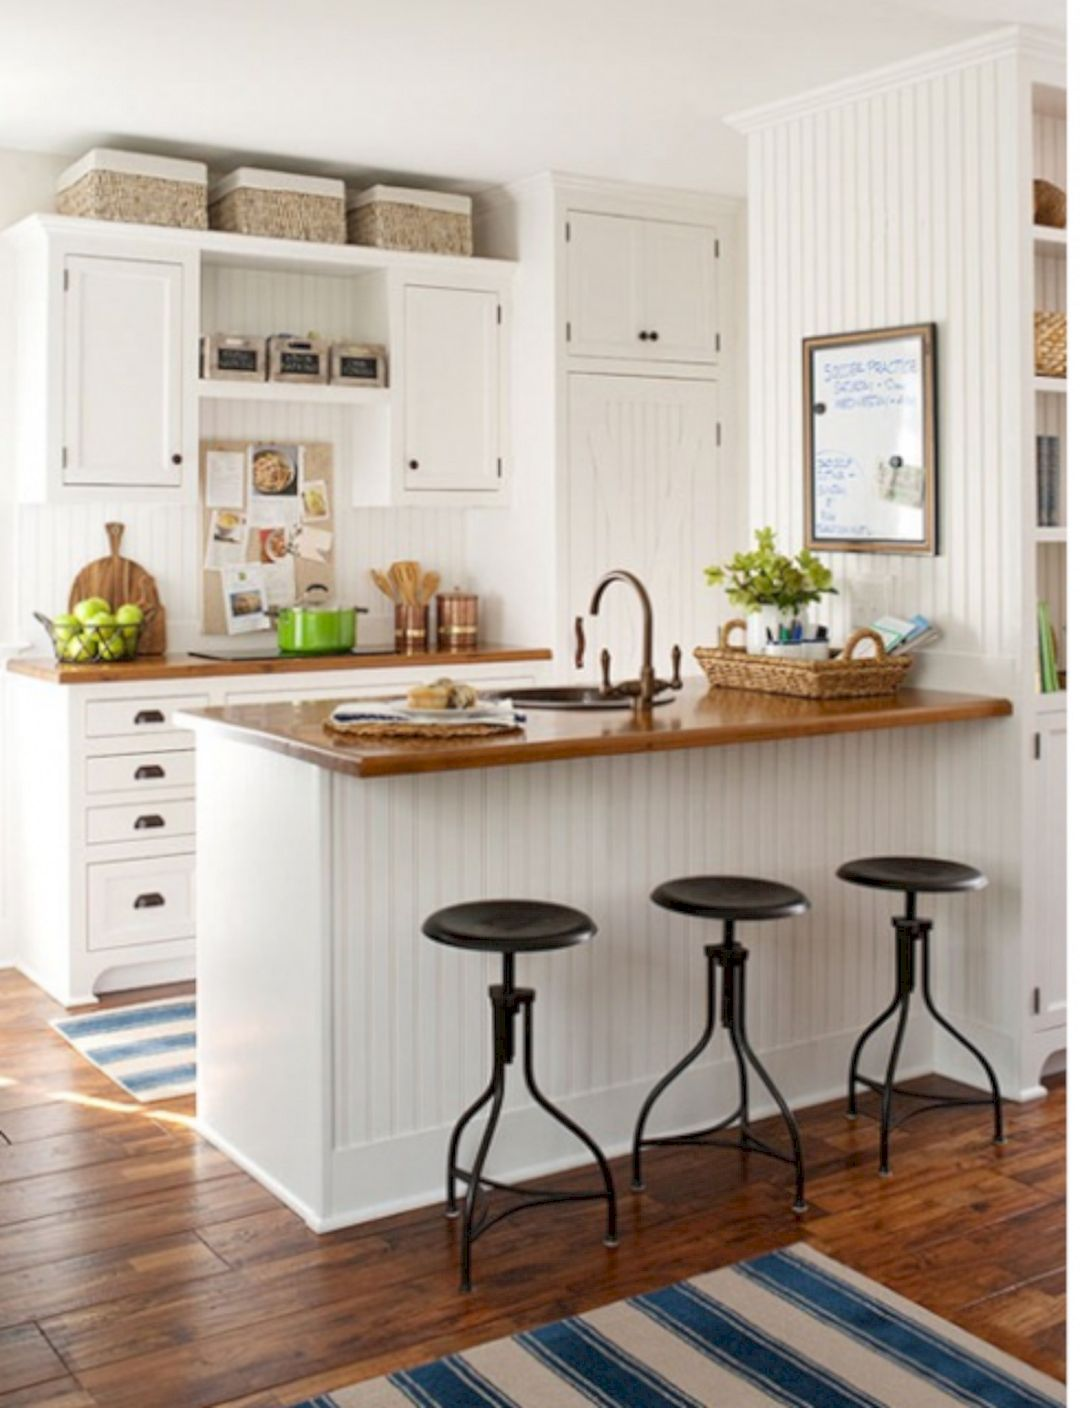 Küchenideen und farben  amazing small kitchen ideas that perfect for your tiny space